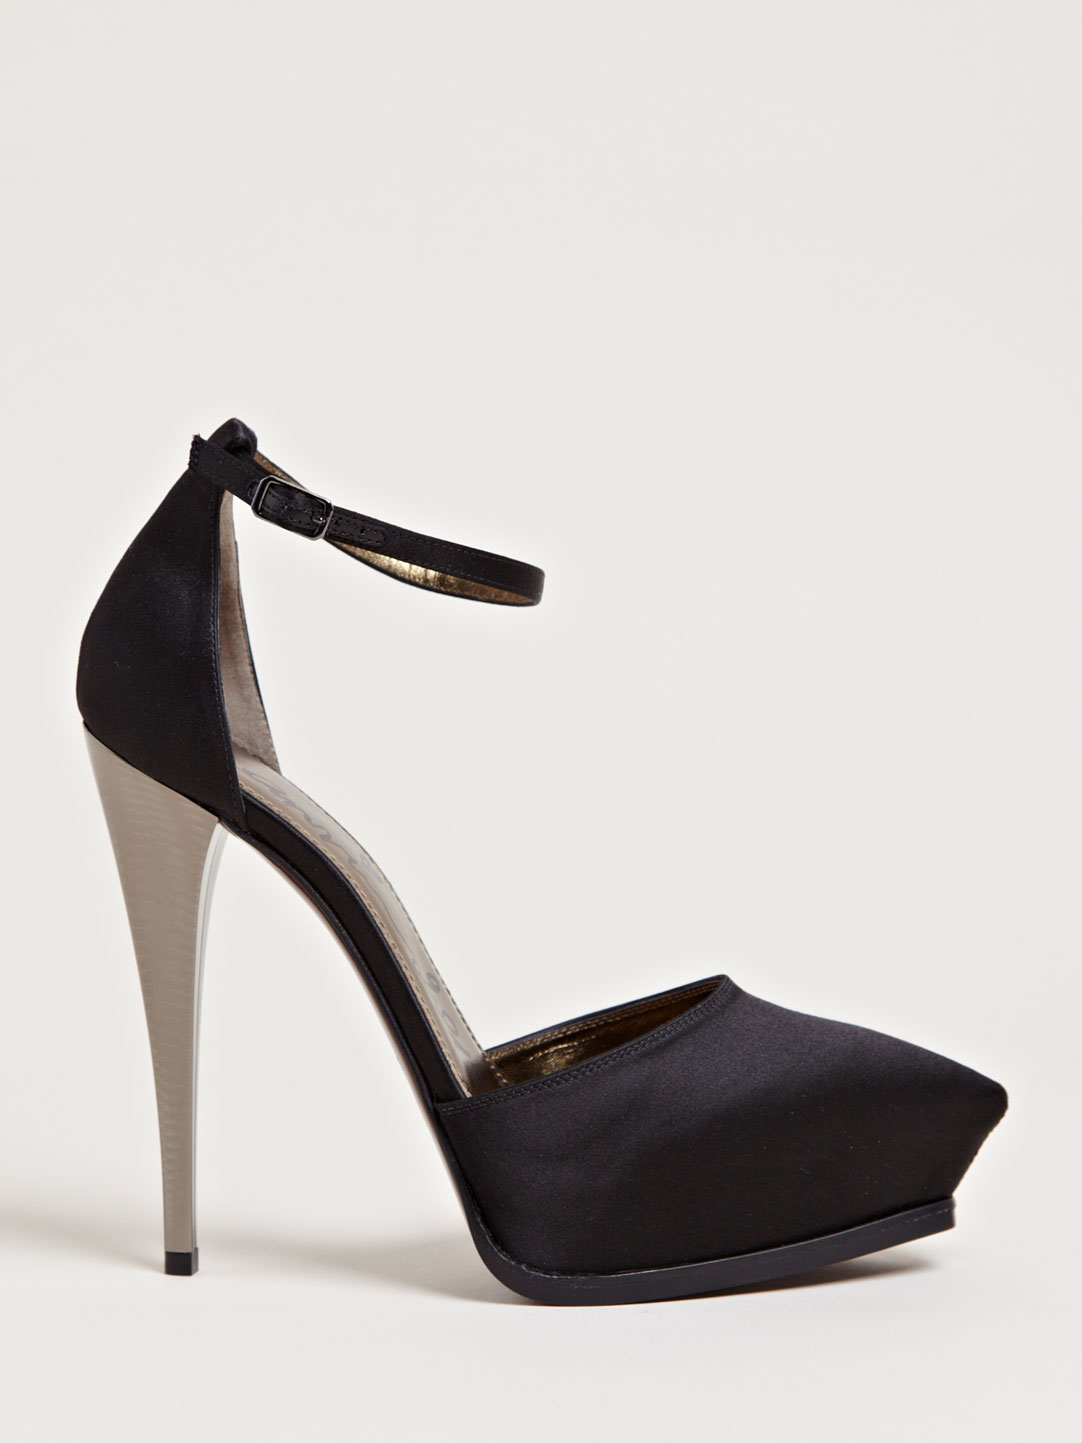 50 Styles Chic Designer Heels You Should Have Owned By Now